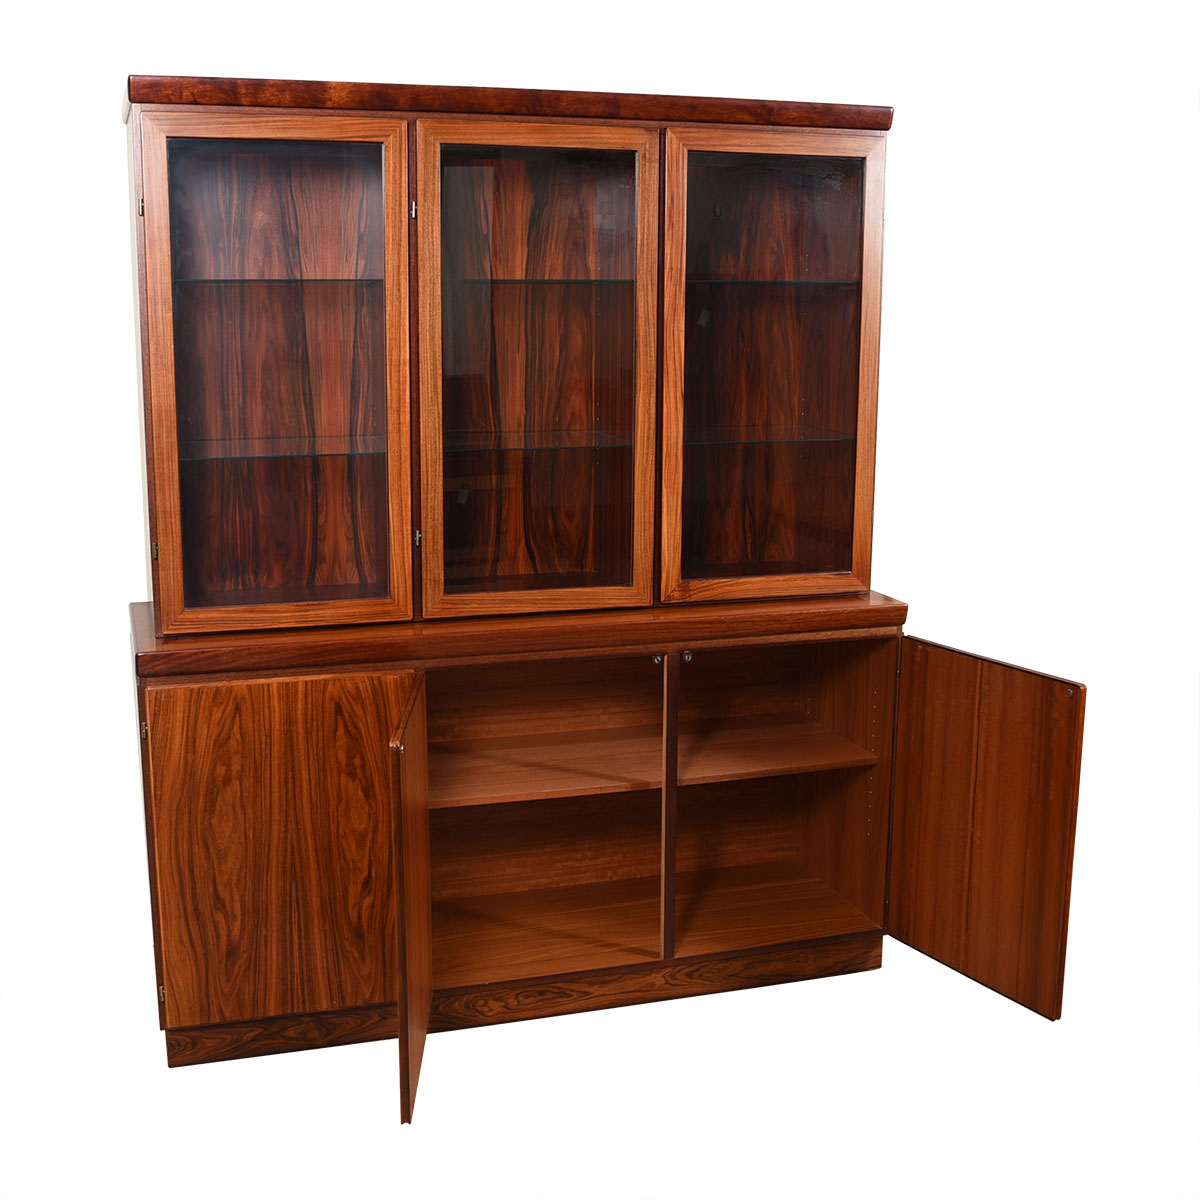 Lighted 2 Piece Danish Modern Rosewood Display Cabinet / Storage